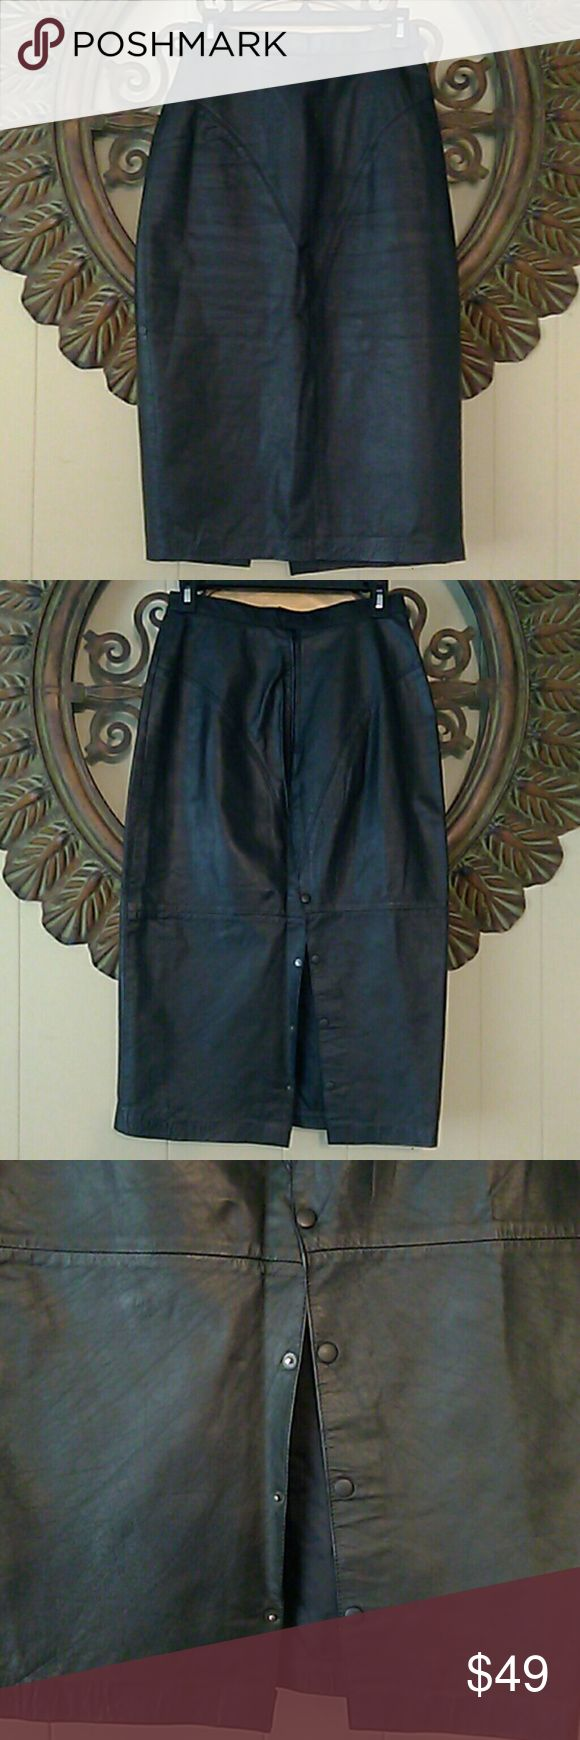 Black Leather Pencil Skirt Very nice long black leather pencil skirt. Very good condition. Button up split in the back. Tarazzia Skirts Pencil